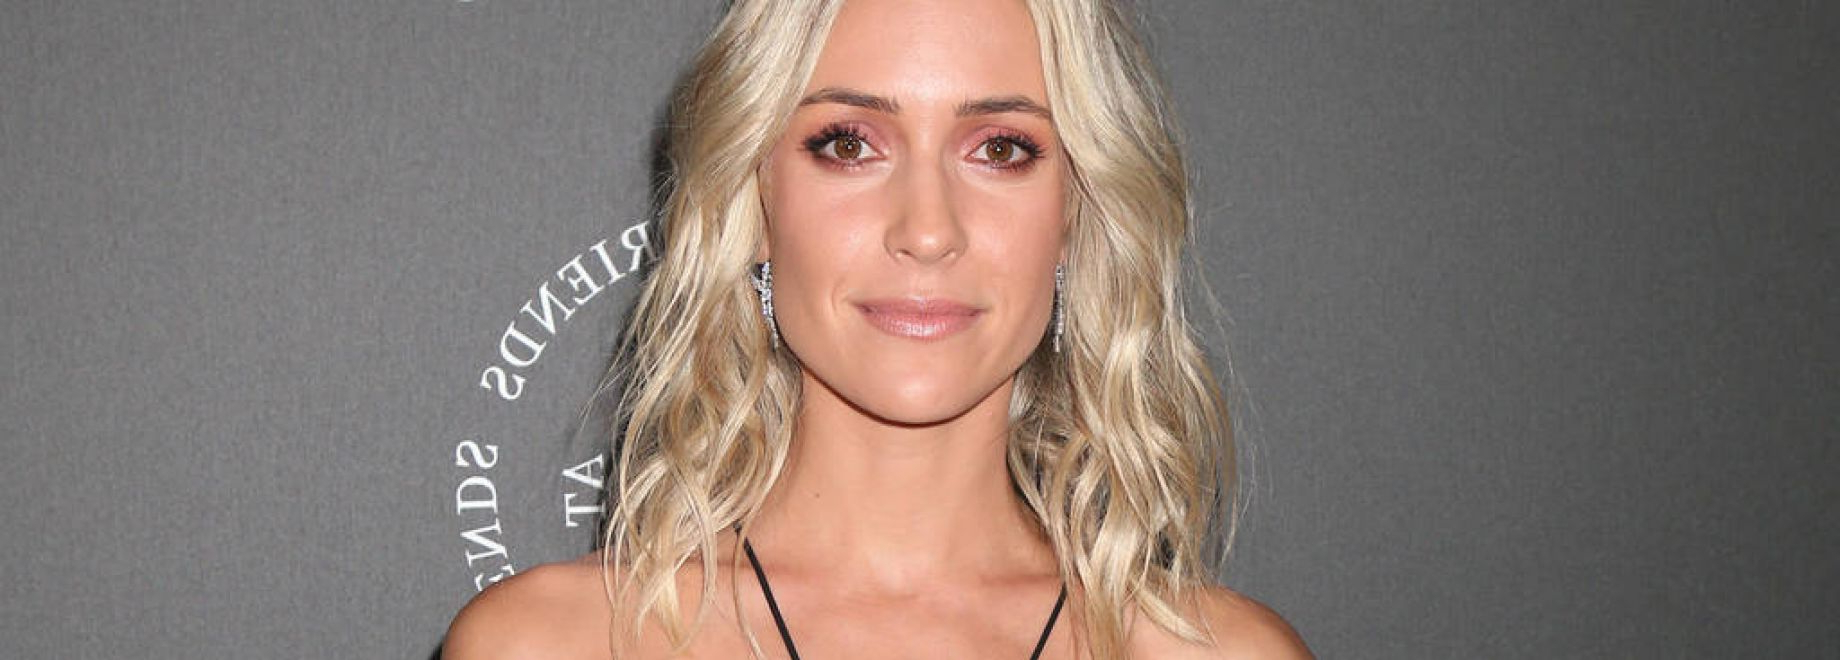 Kristin Cavallari Reduced To Tearsbrother's Message (View 10 of 20)